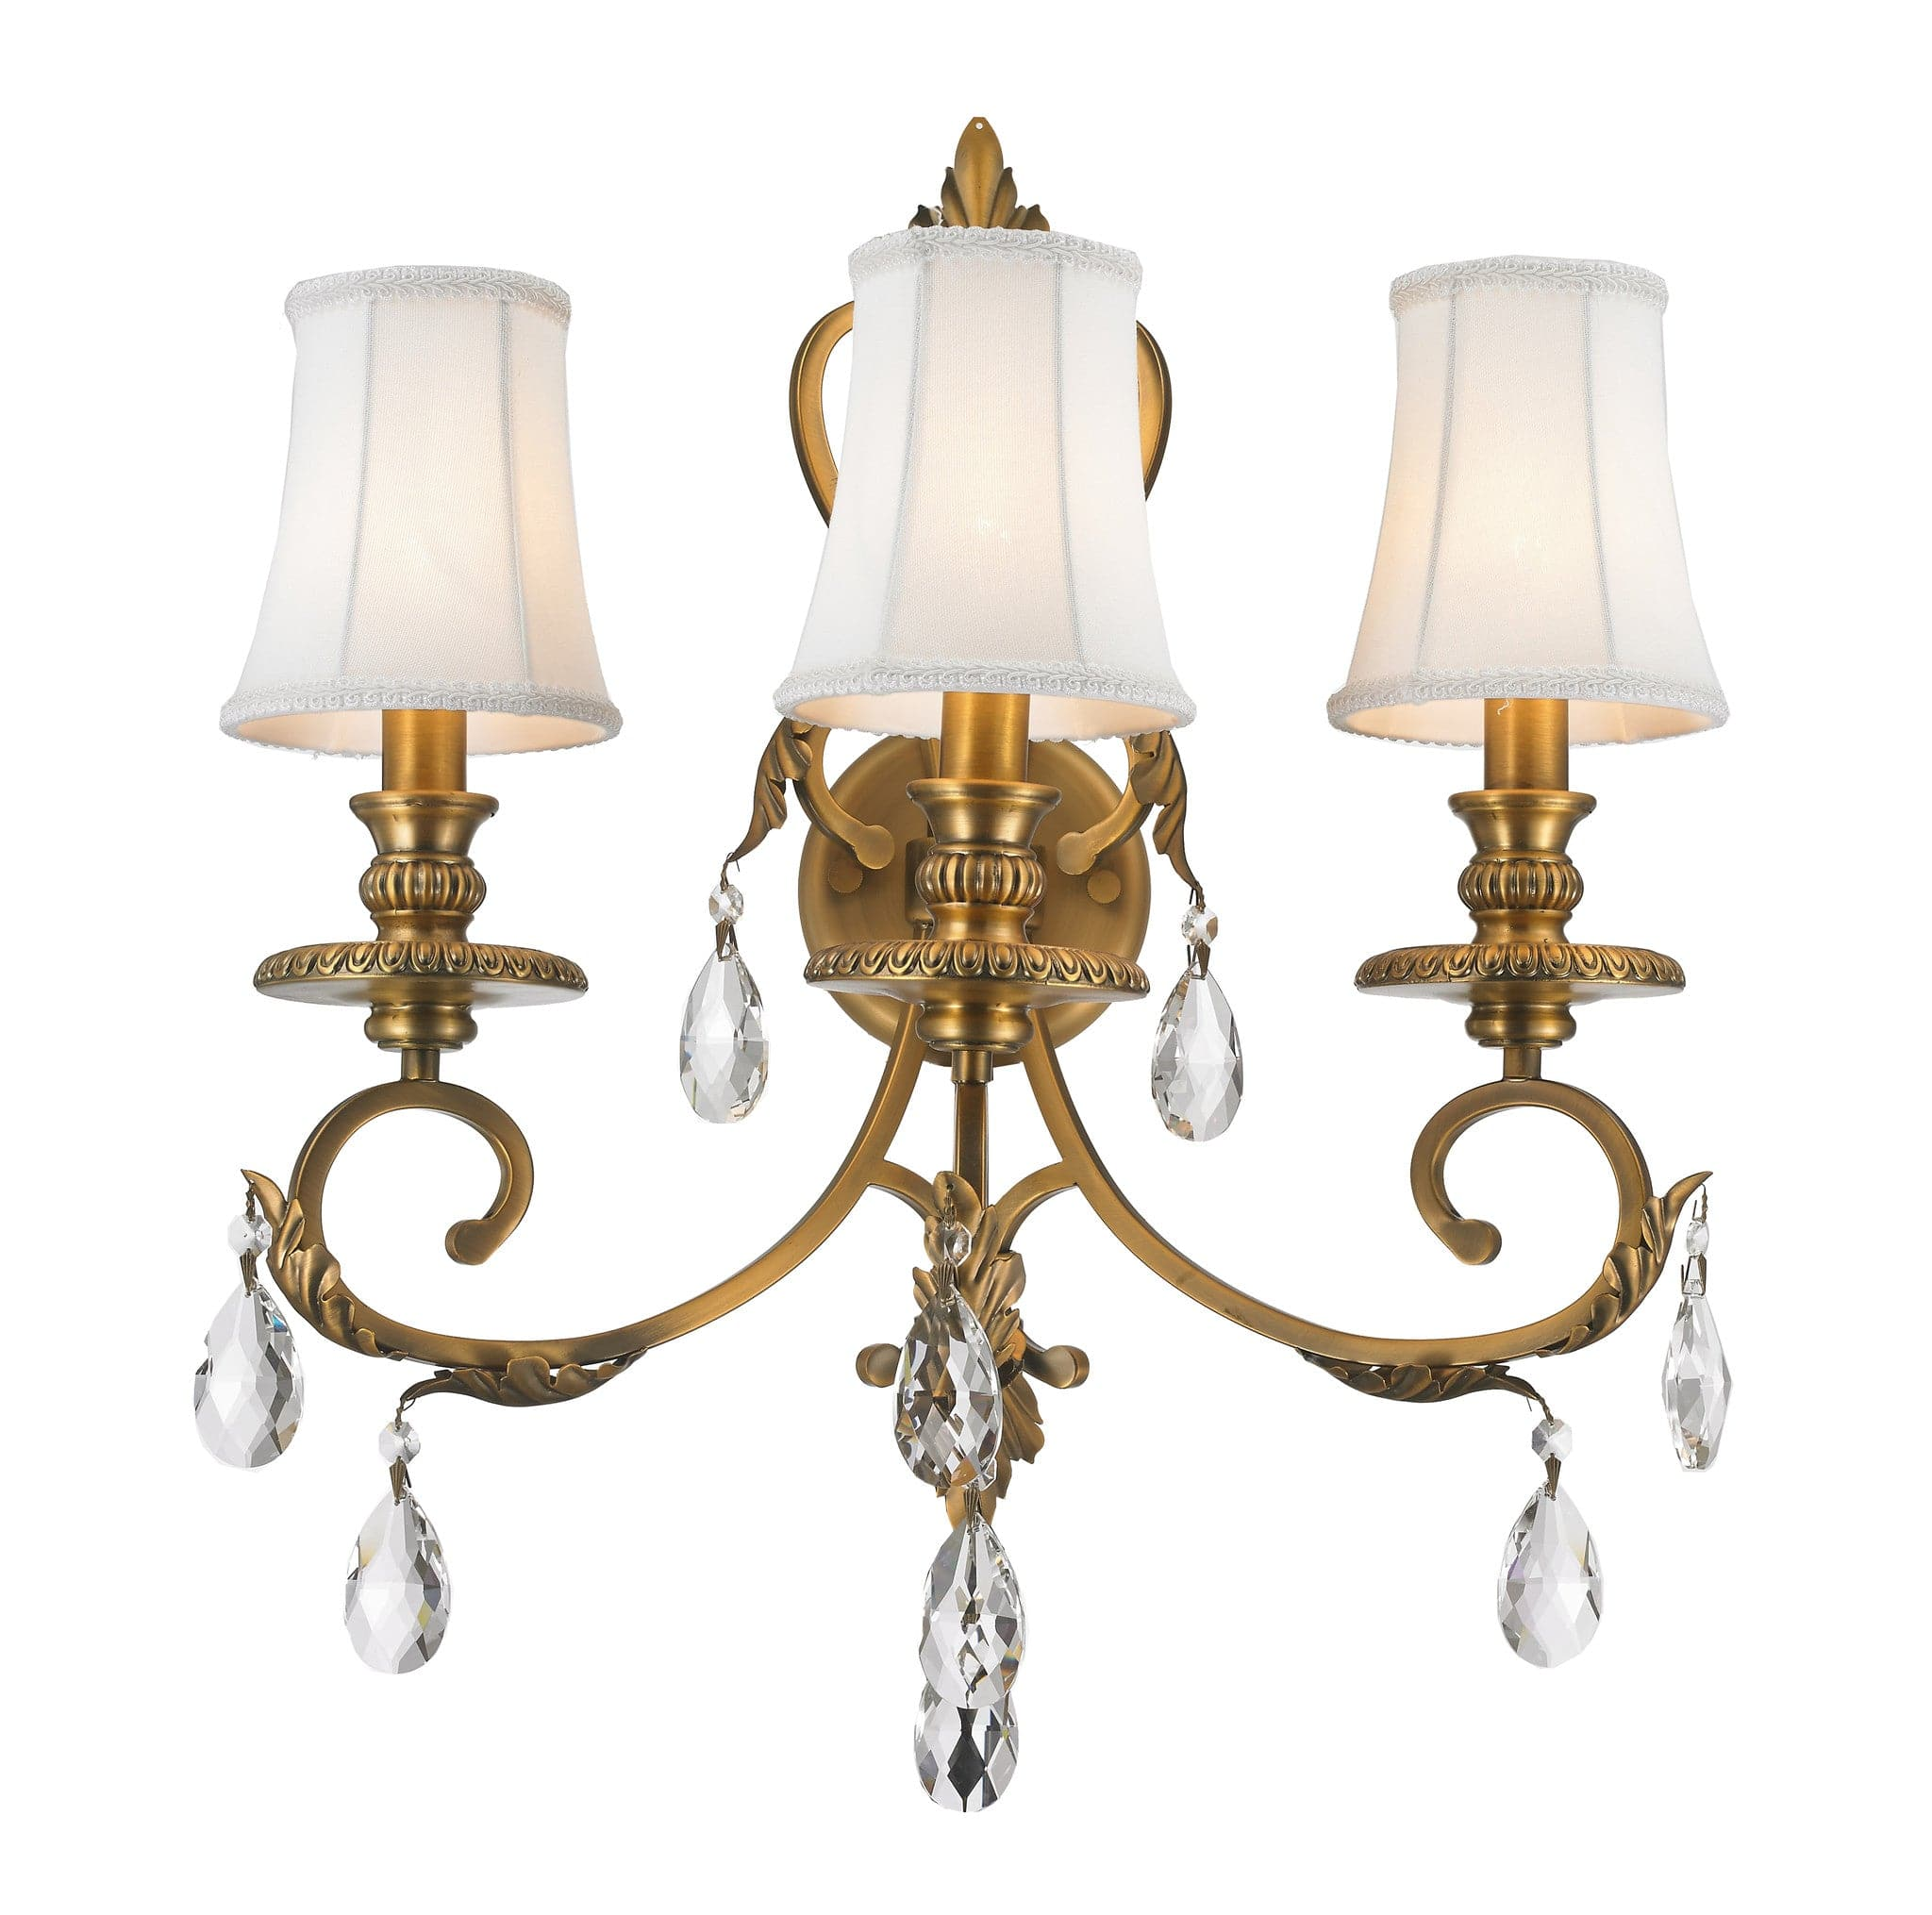 chandelier chandeliers modern decoration teenage plug teens wall size art design room in fixtures light ceiling of for sconces magnificent antique sconce lighting large lightin full